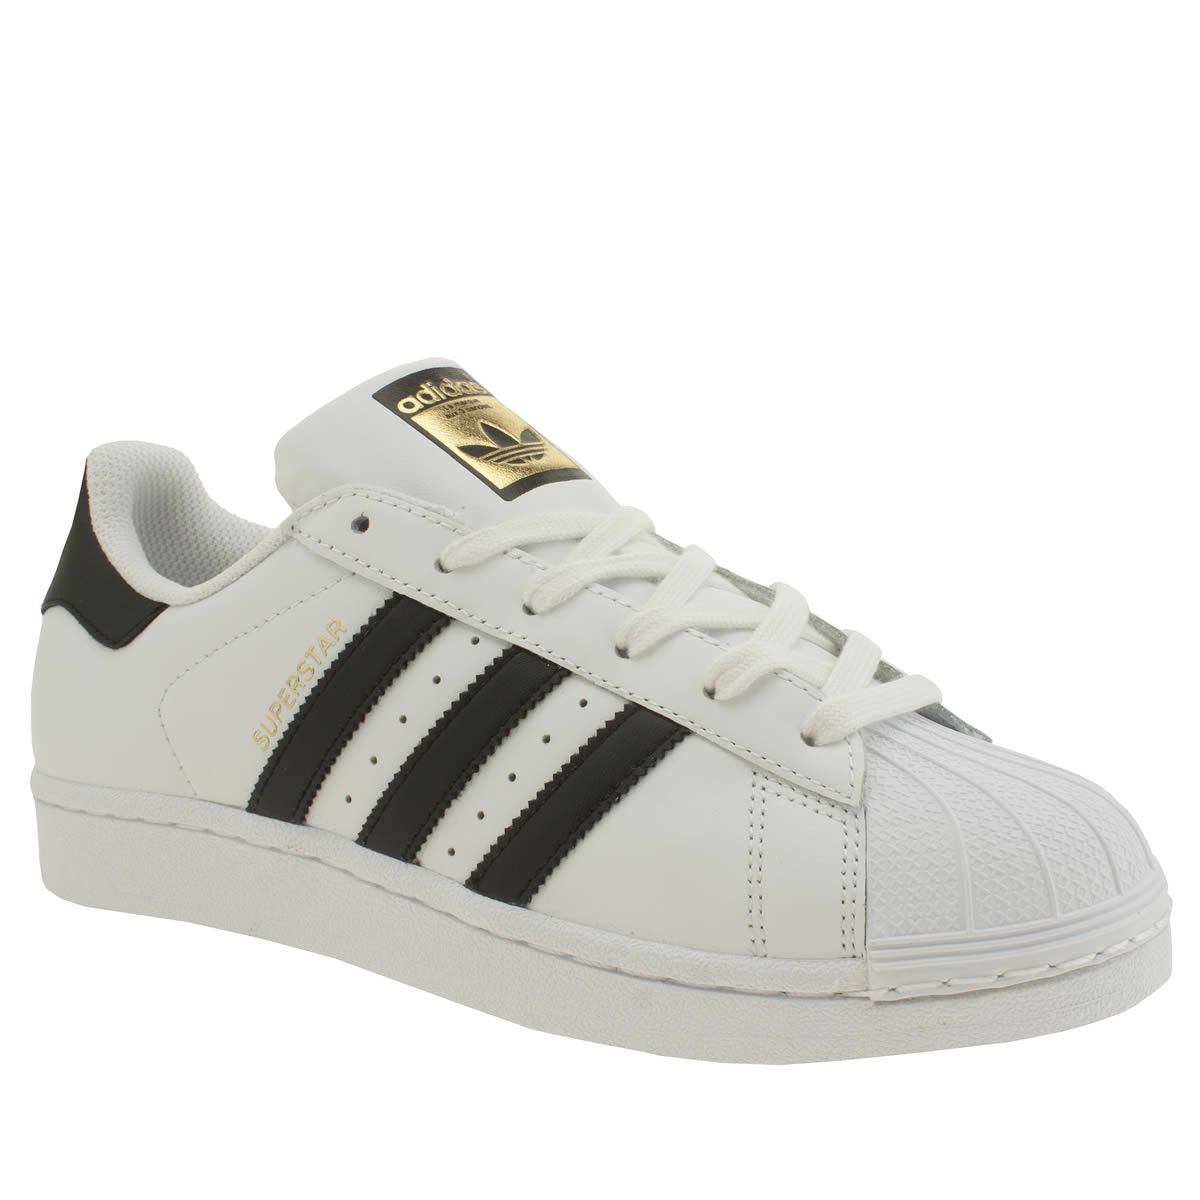 New Adidas Originals Superstar Marine Trainers for Women Online